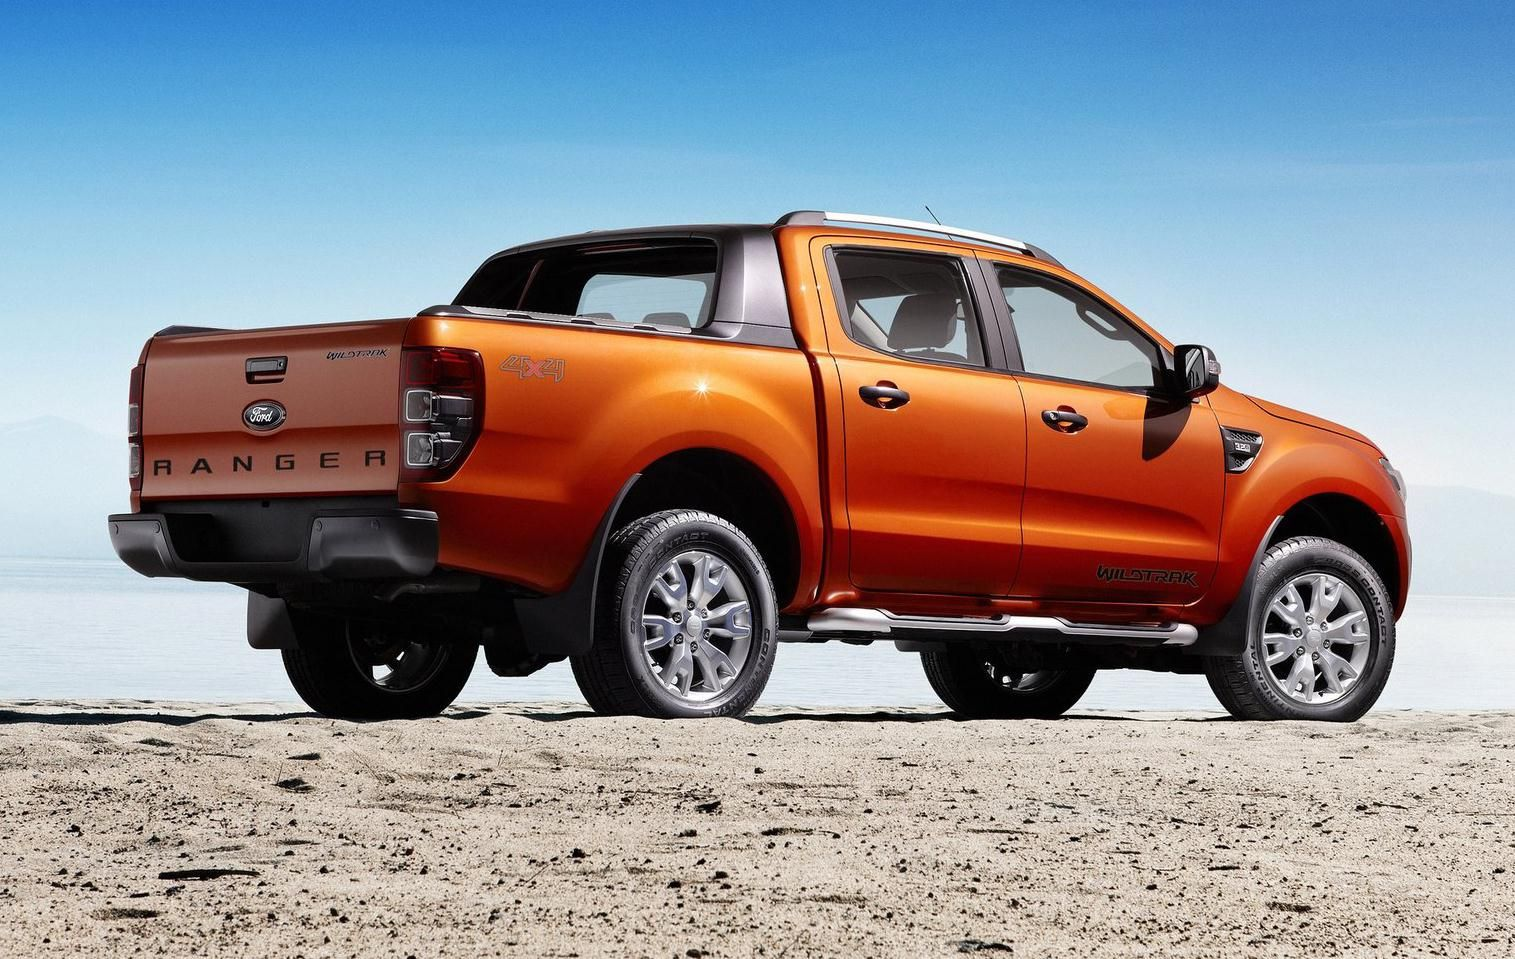 ford ranger #10 | ford ranger | pinterest | ford ranger, ford and